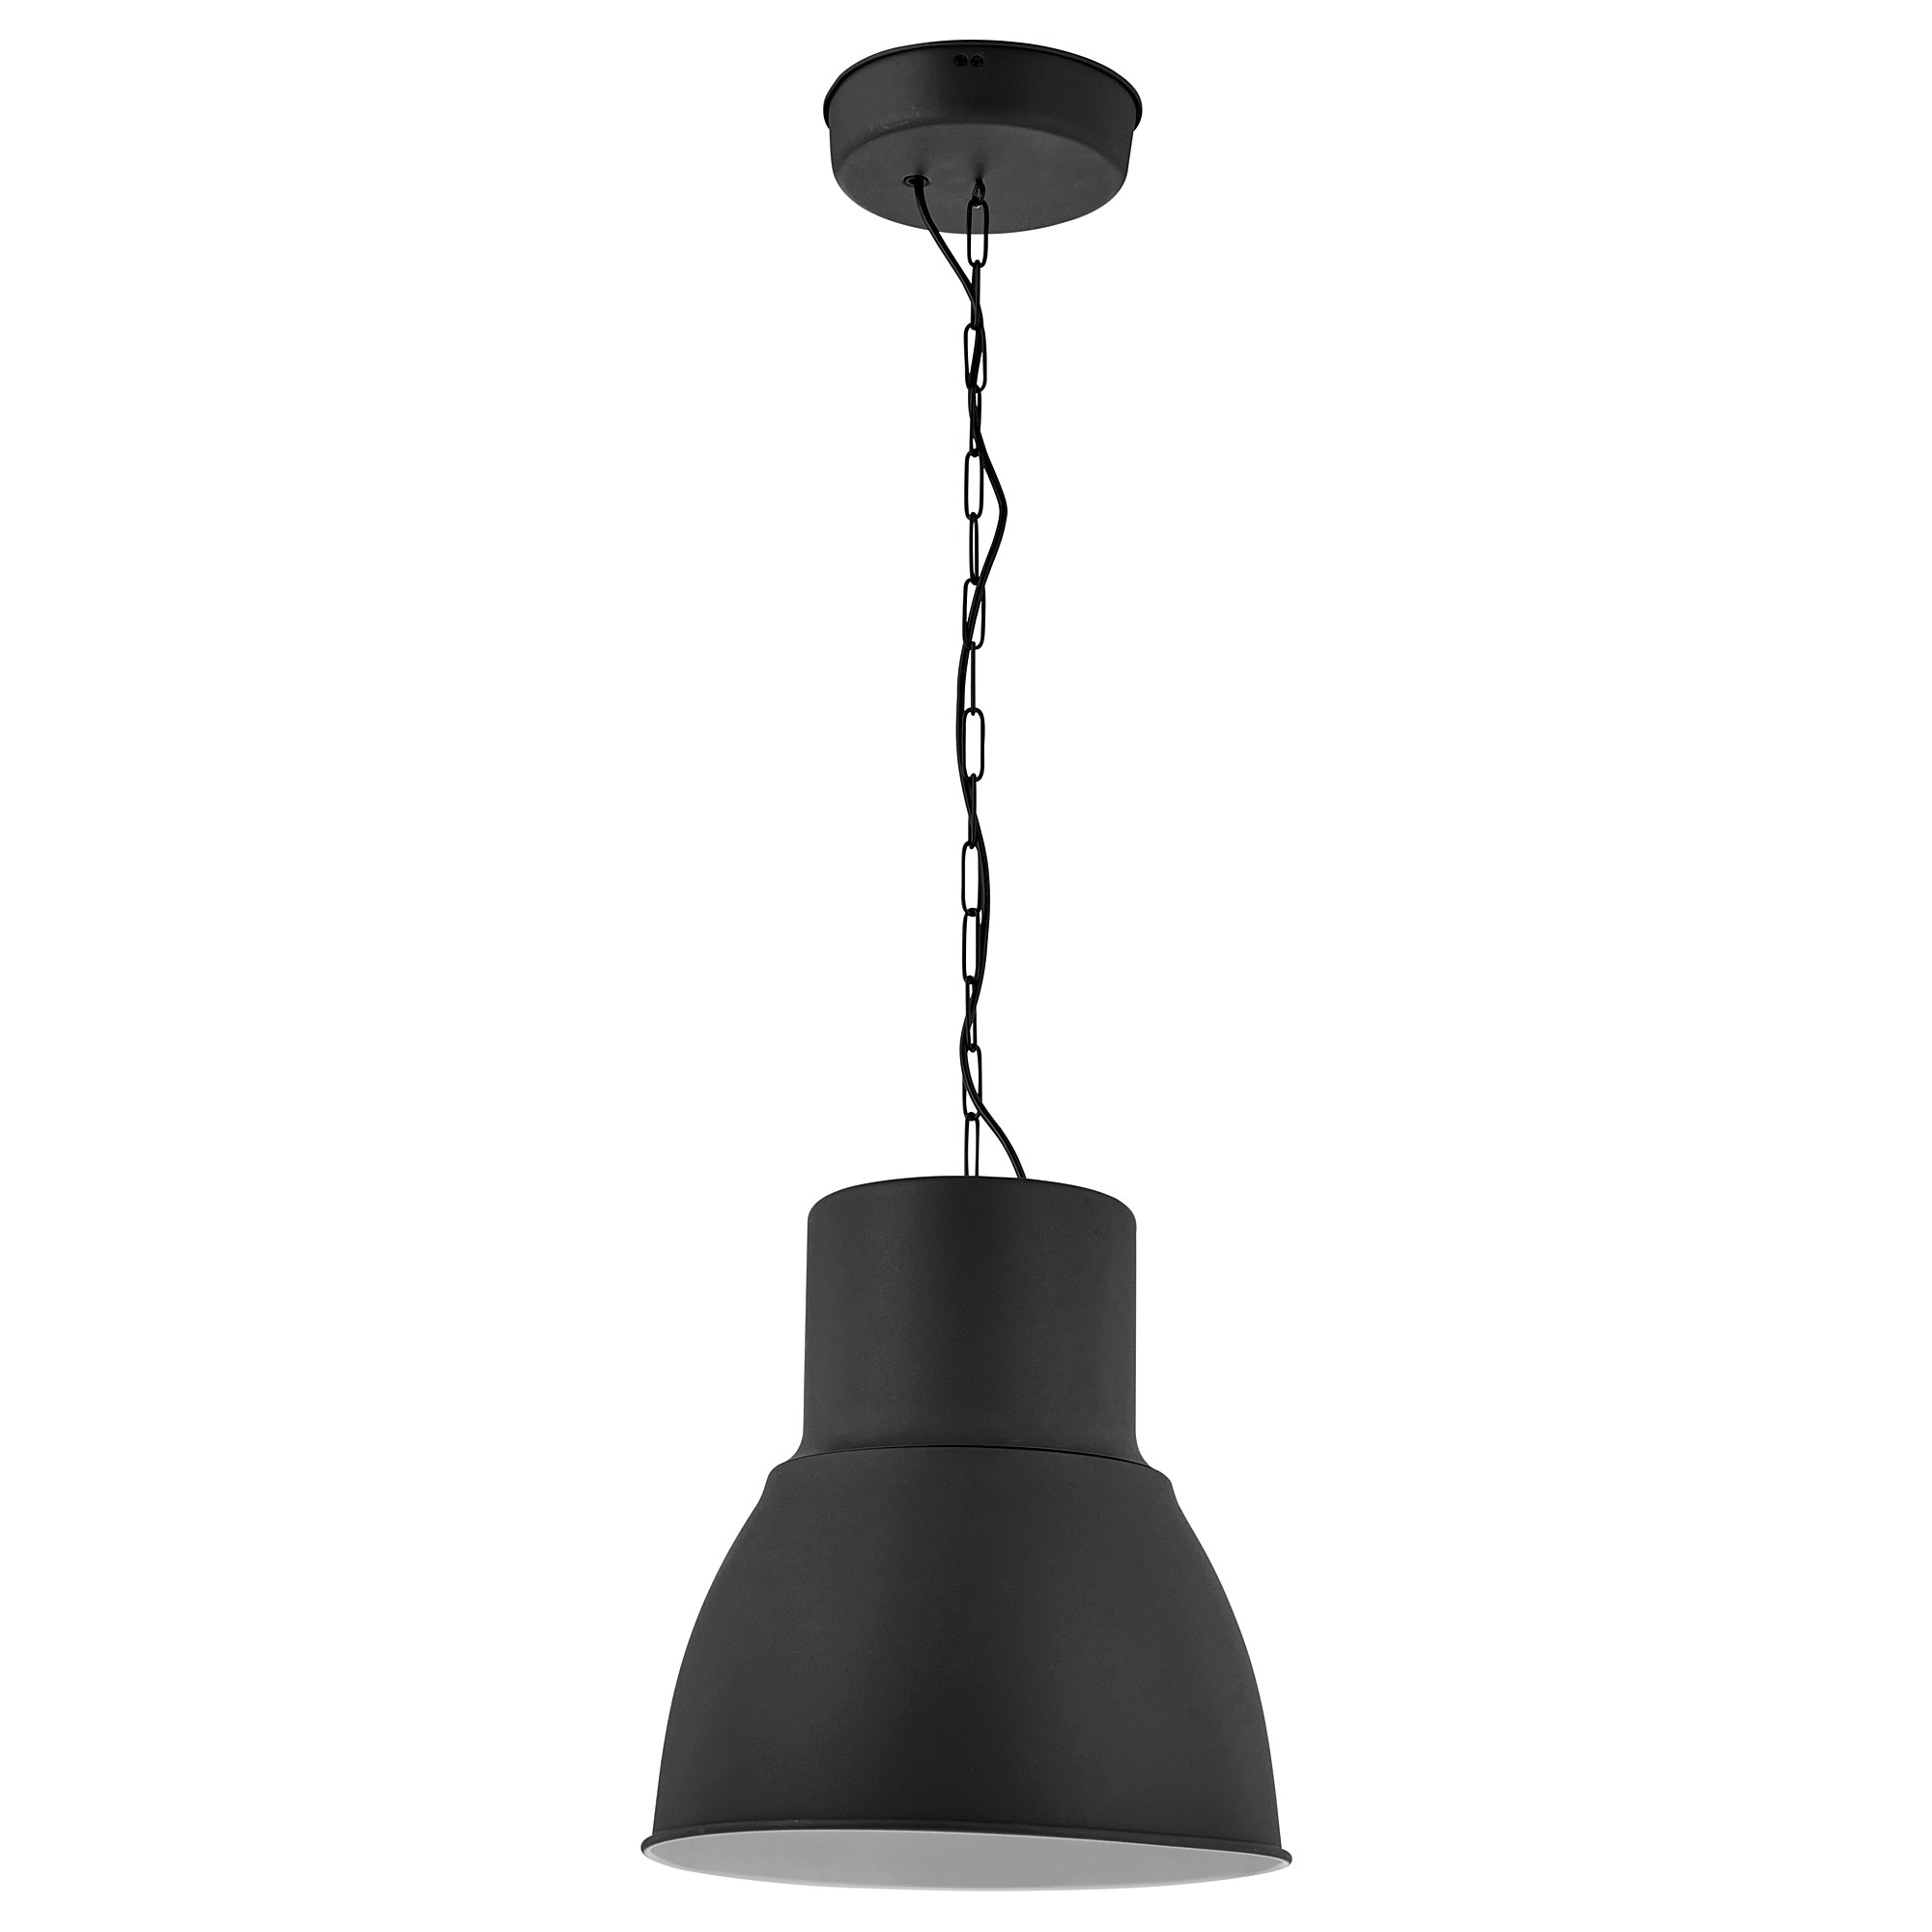 lighting black homewares ceilings light chandeliers mauritzpendantlightblackde domayne pendant ceiling mauritz